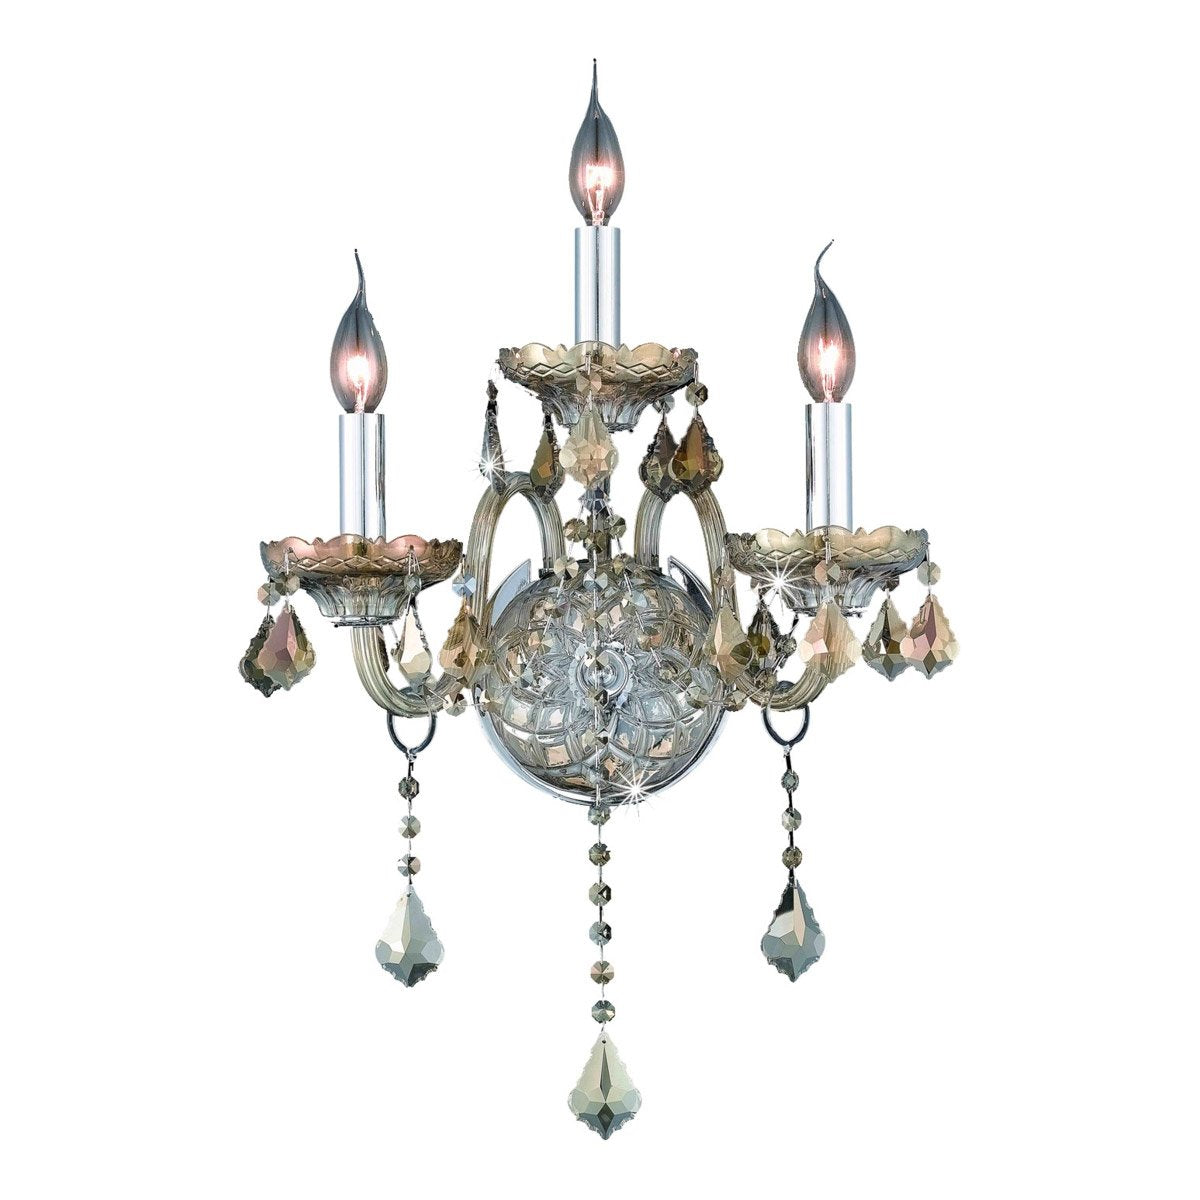 Verona 14 Crystal Wall Sconce With 3 Lights - Golden Teak Finish And Smokey / Royal Cut Crystal Wall Sconce